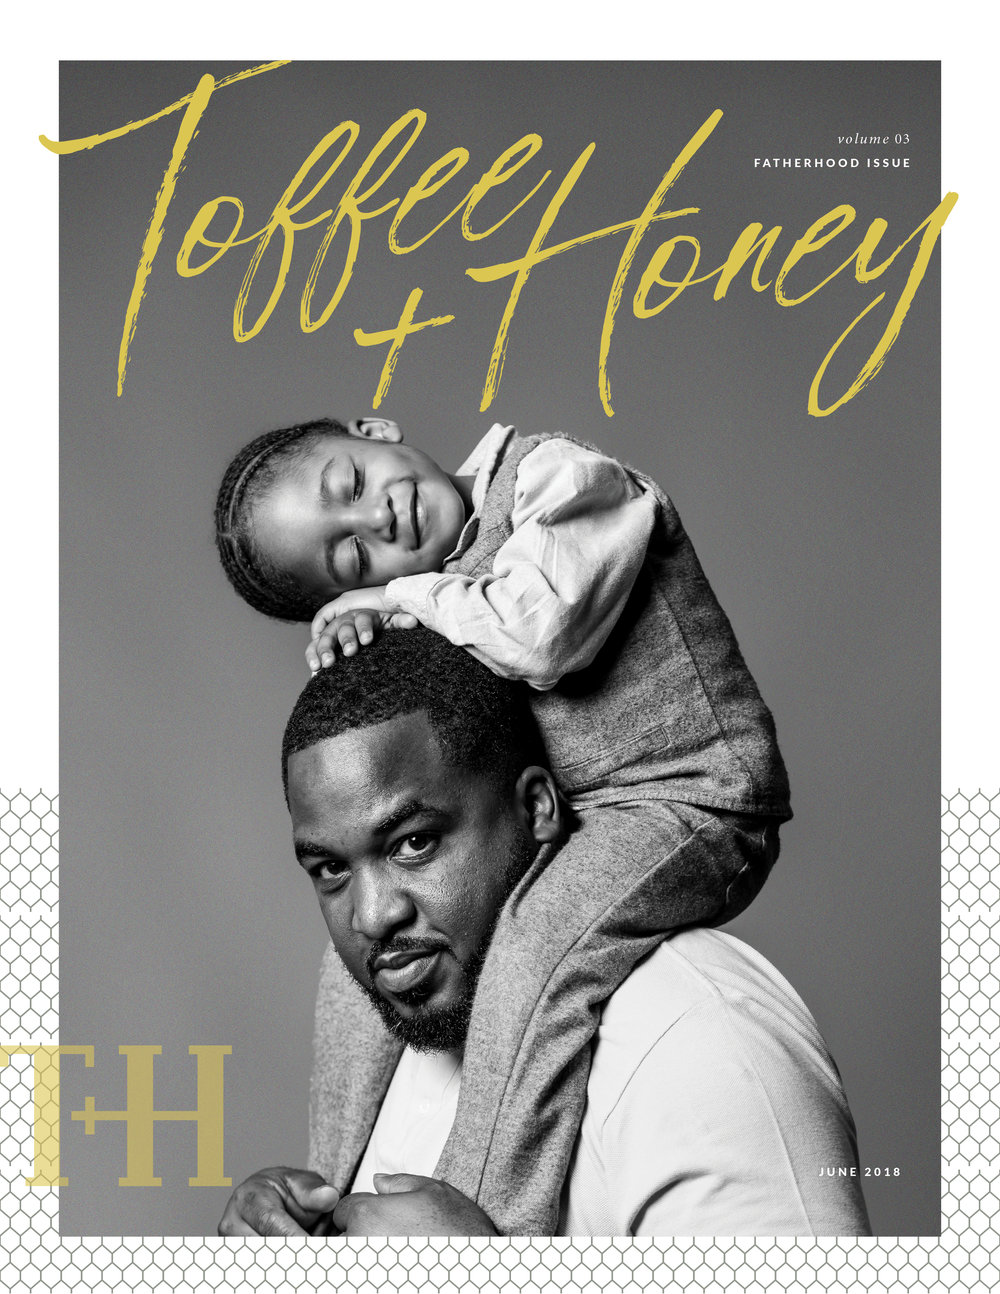 Toffee and Honey Magazine June 2018 Cover.jpg